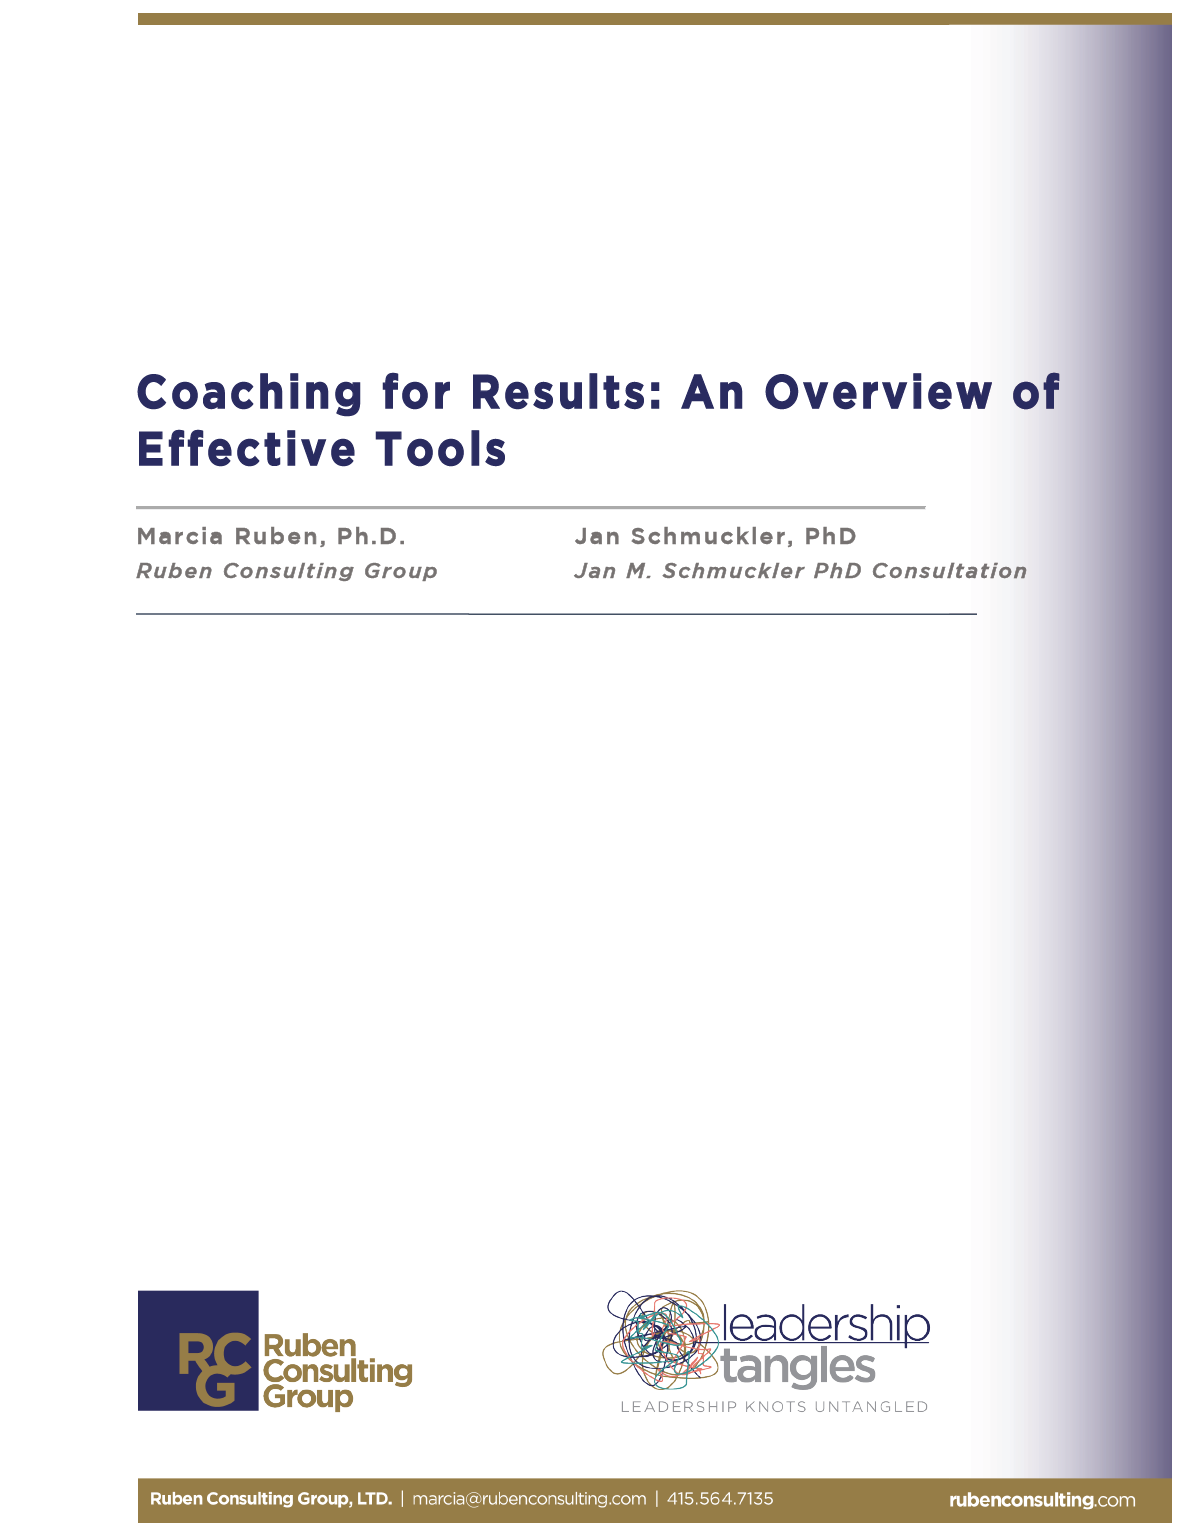 Coaching_for_Results-_An_Overview_of_Effective_Tools.png